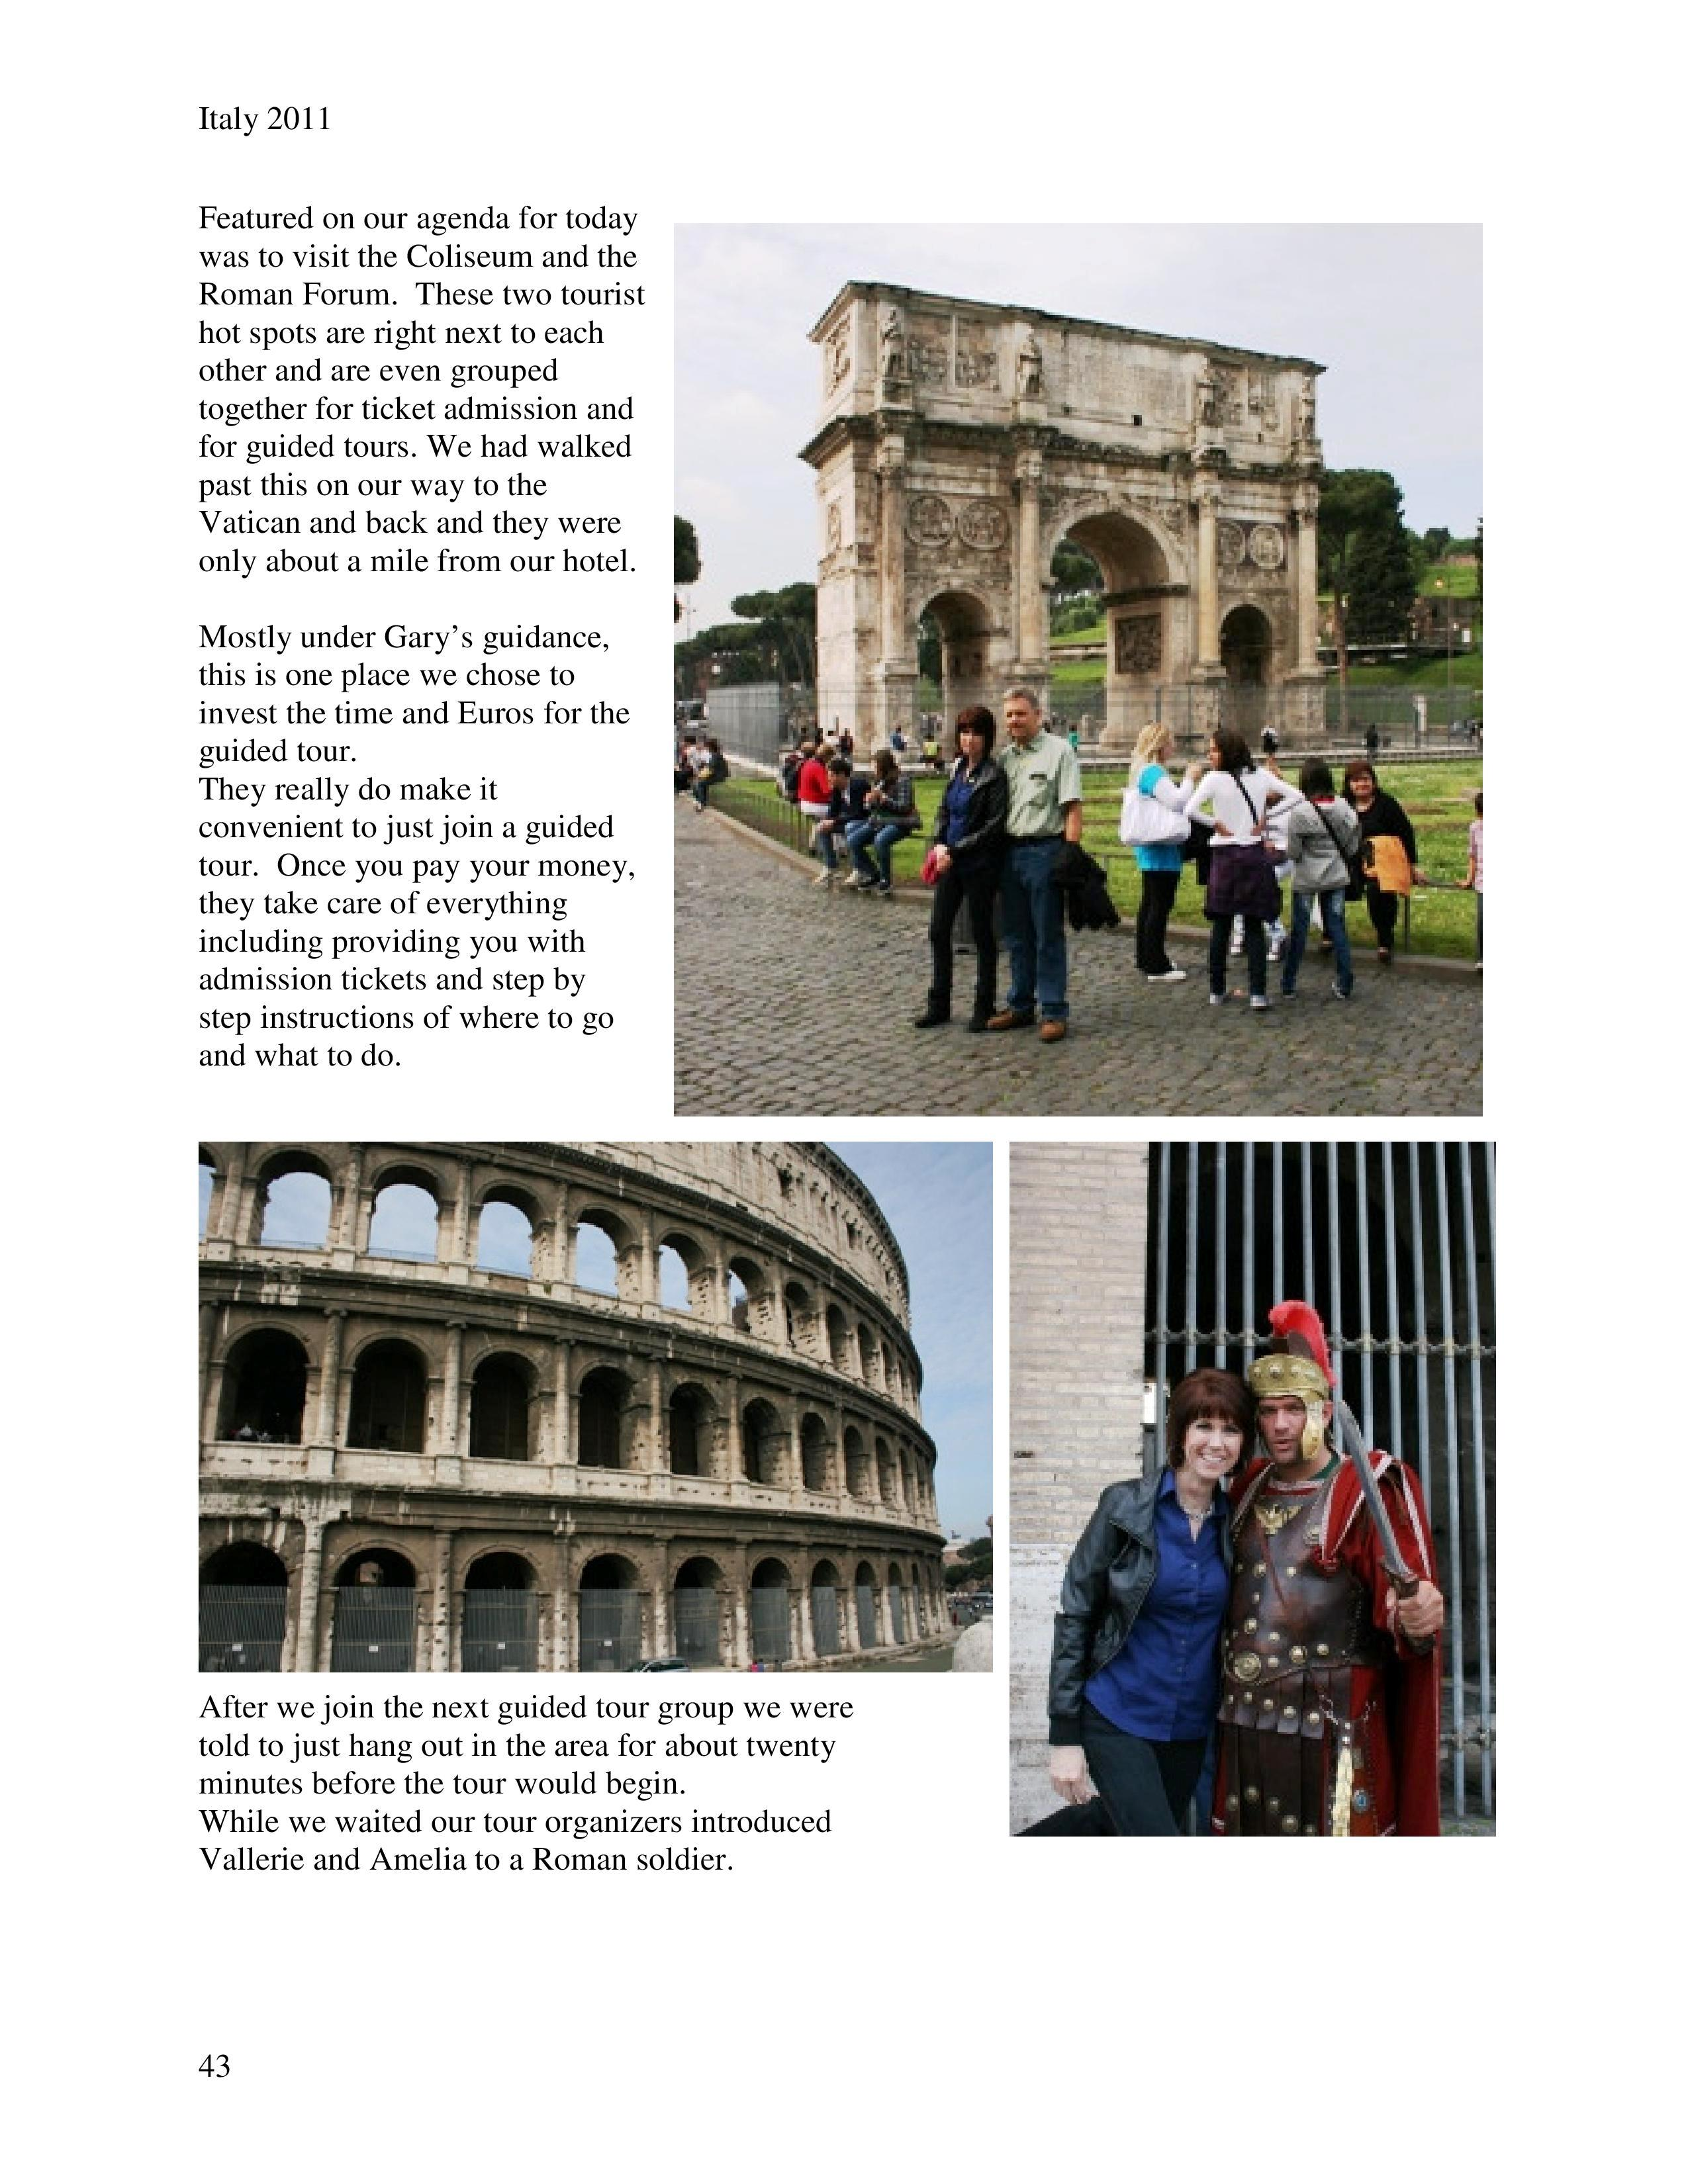 Italy 2011 May 3 - Day 5-page-002